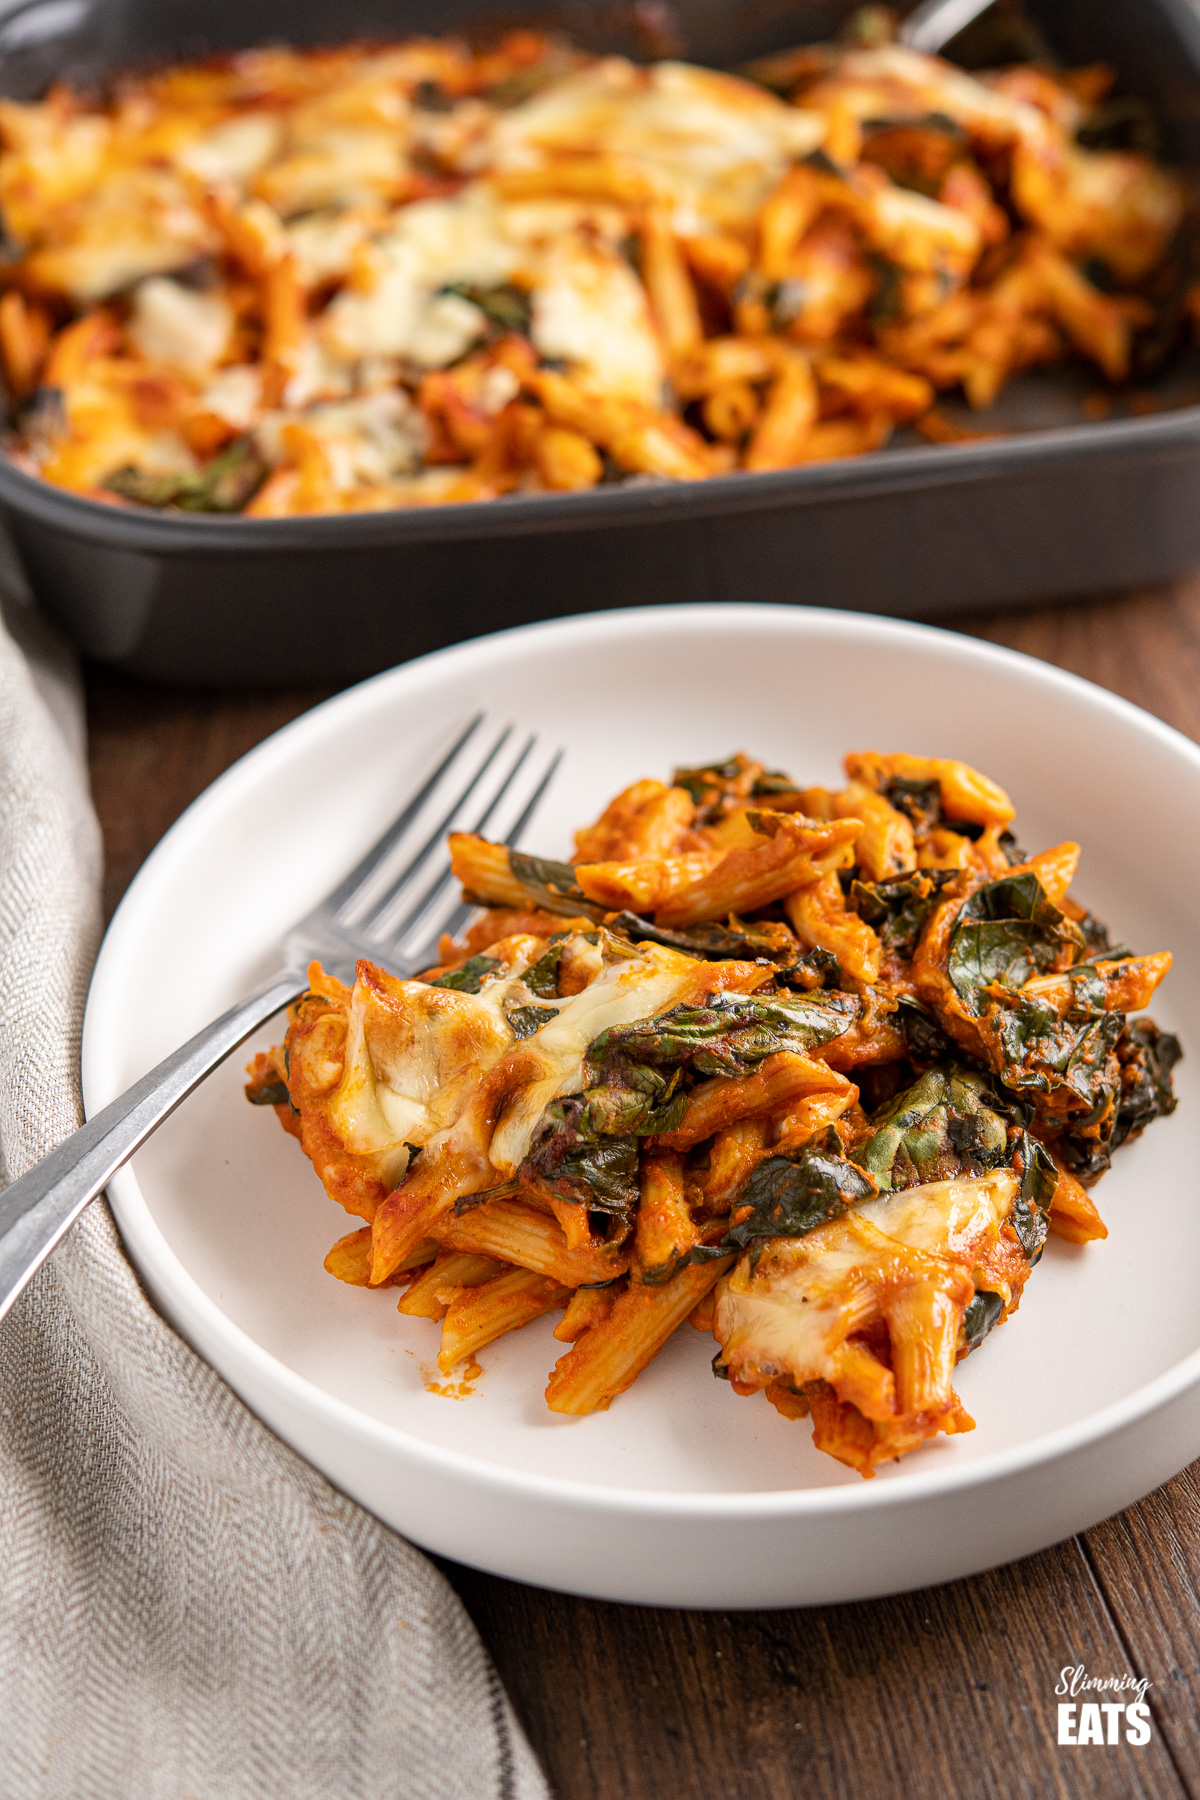 white plate with a serving of spinach pasta bake, oven dish in background